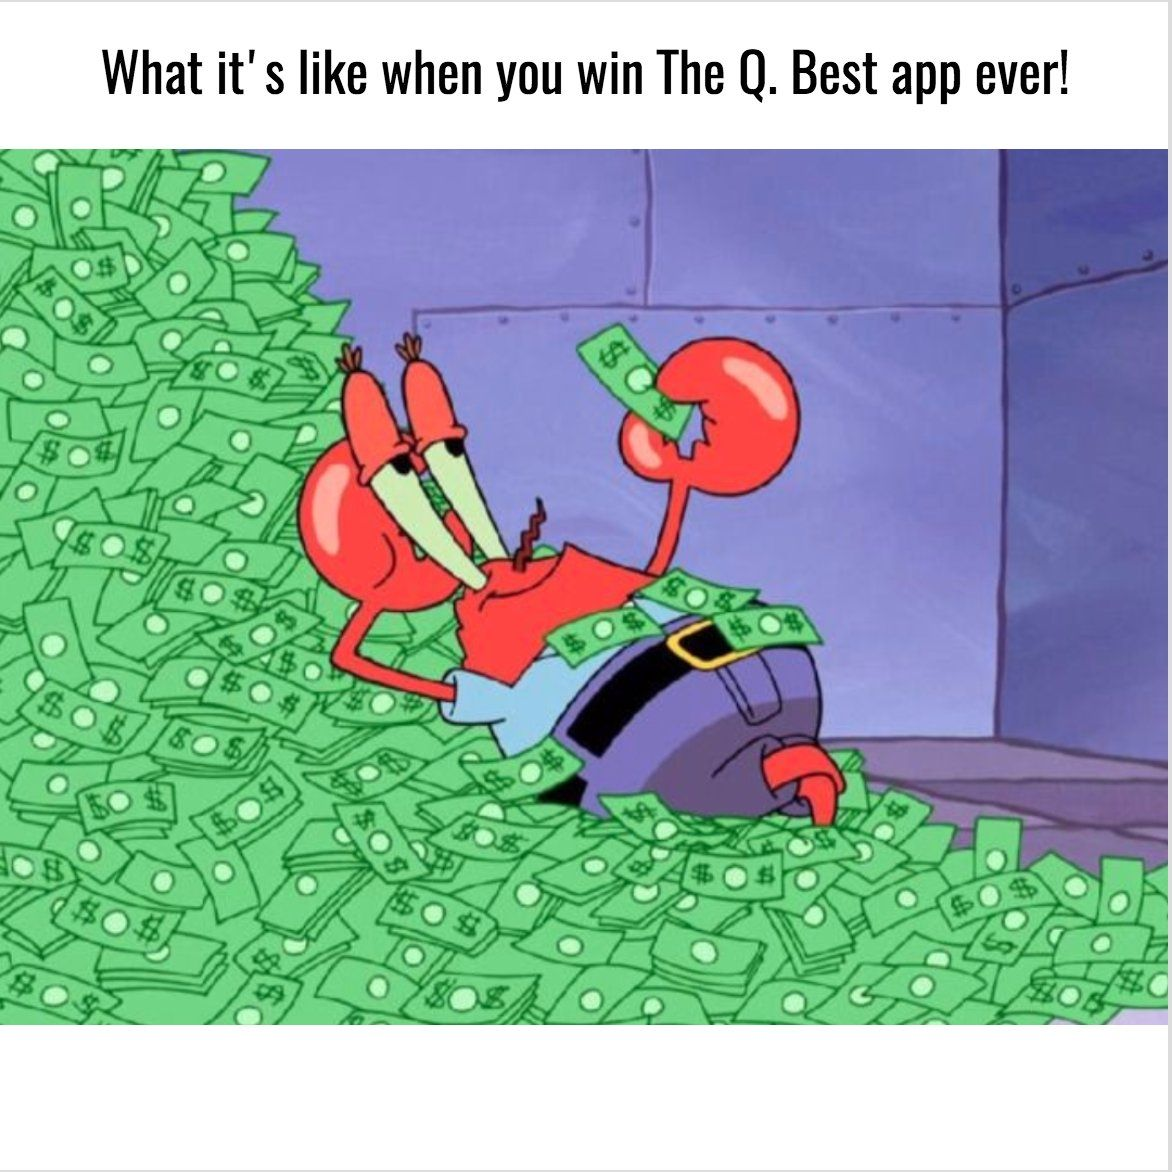 @AdventurerPosts : RT @radsha040: Guys you got to get this new free app. You can win real money daily. https://t.co/NKw2NlK5Wm